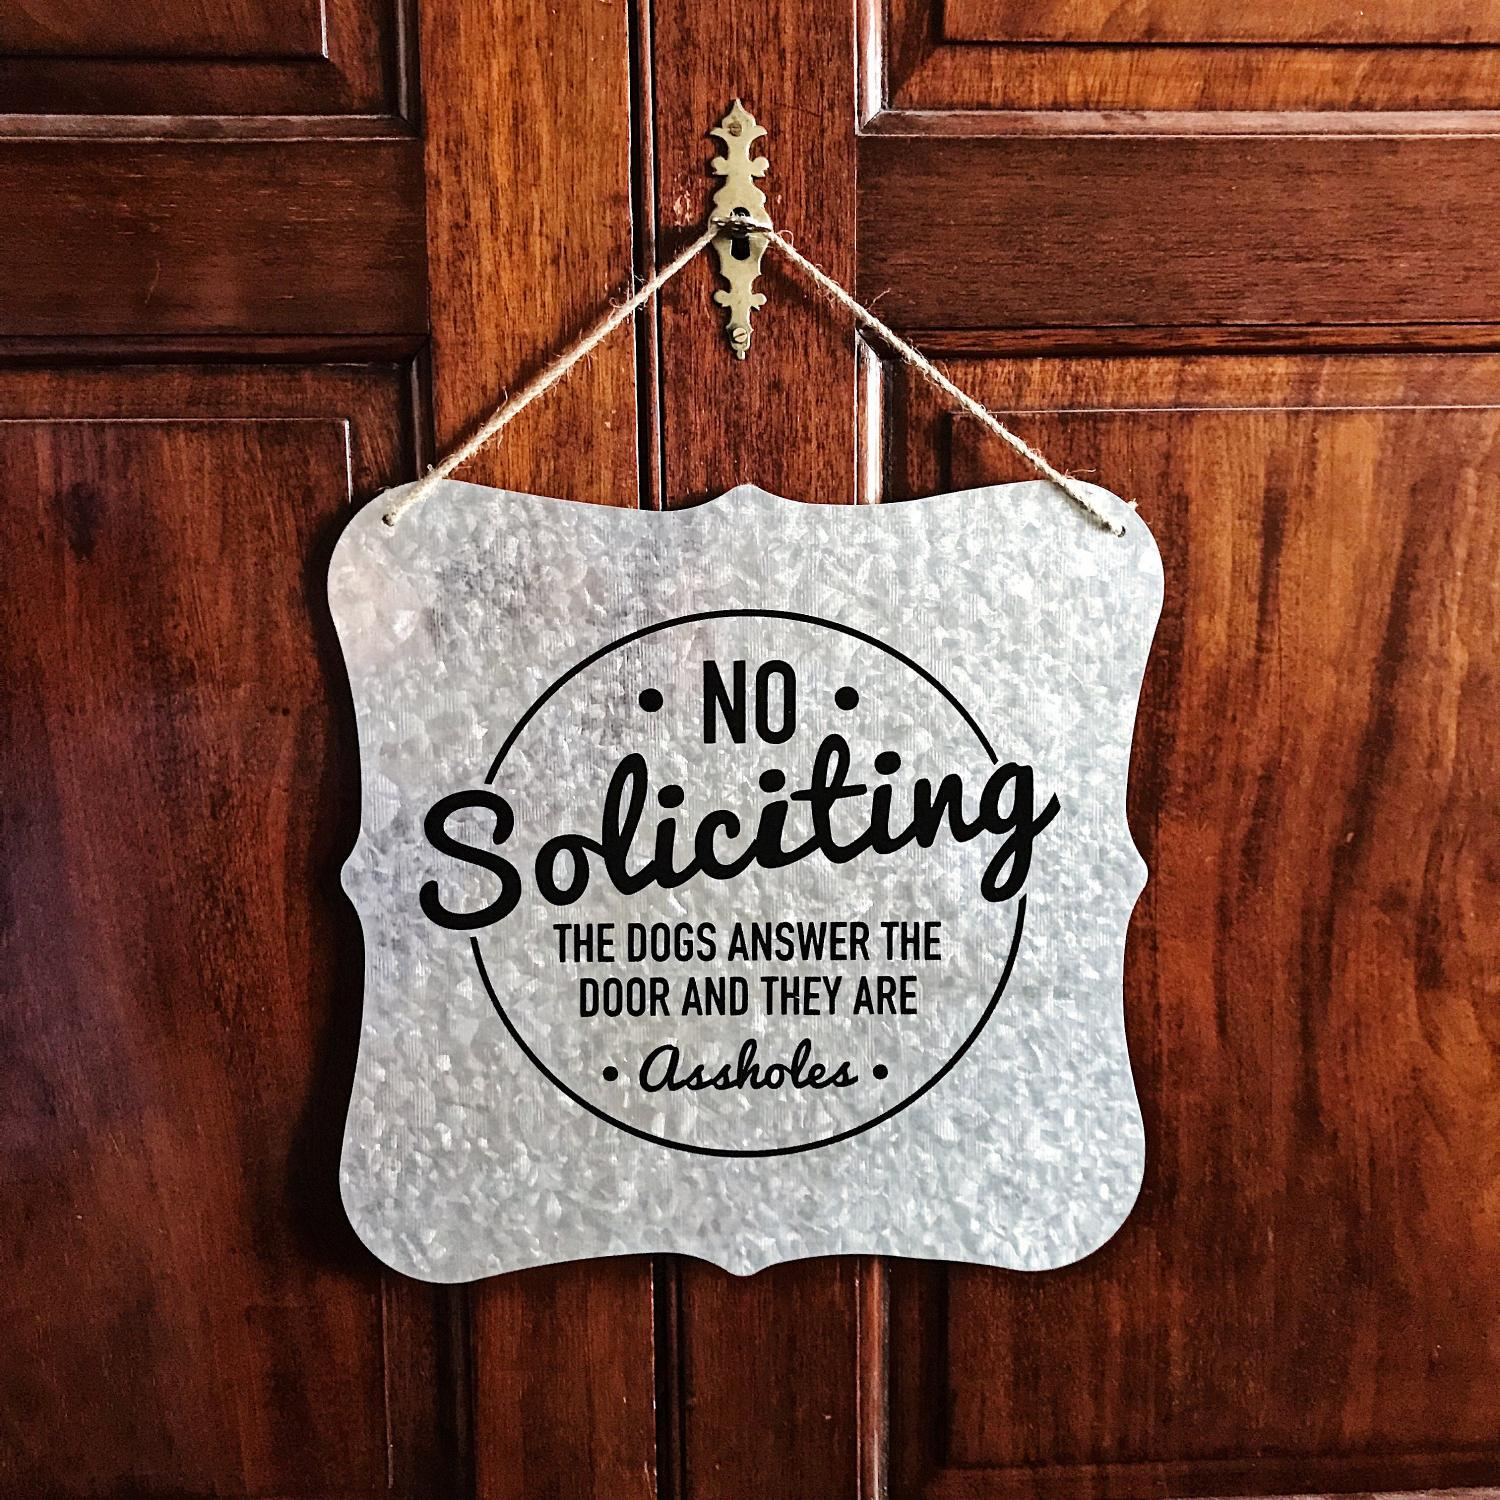 Picture of: This Welcome Solicitors Sign Should Be On Every House That Hates Door To Door Sales People